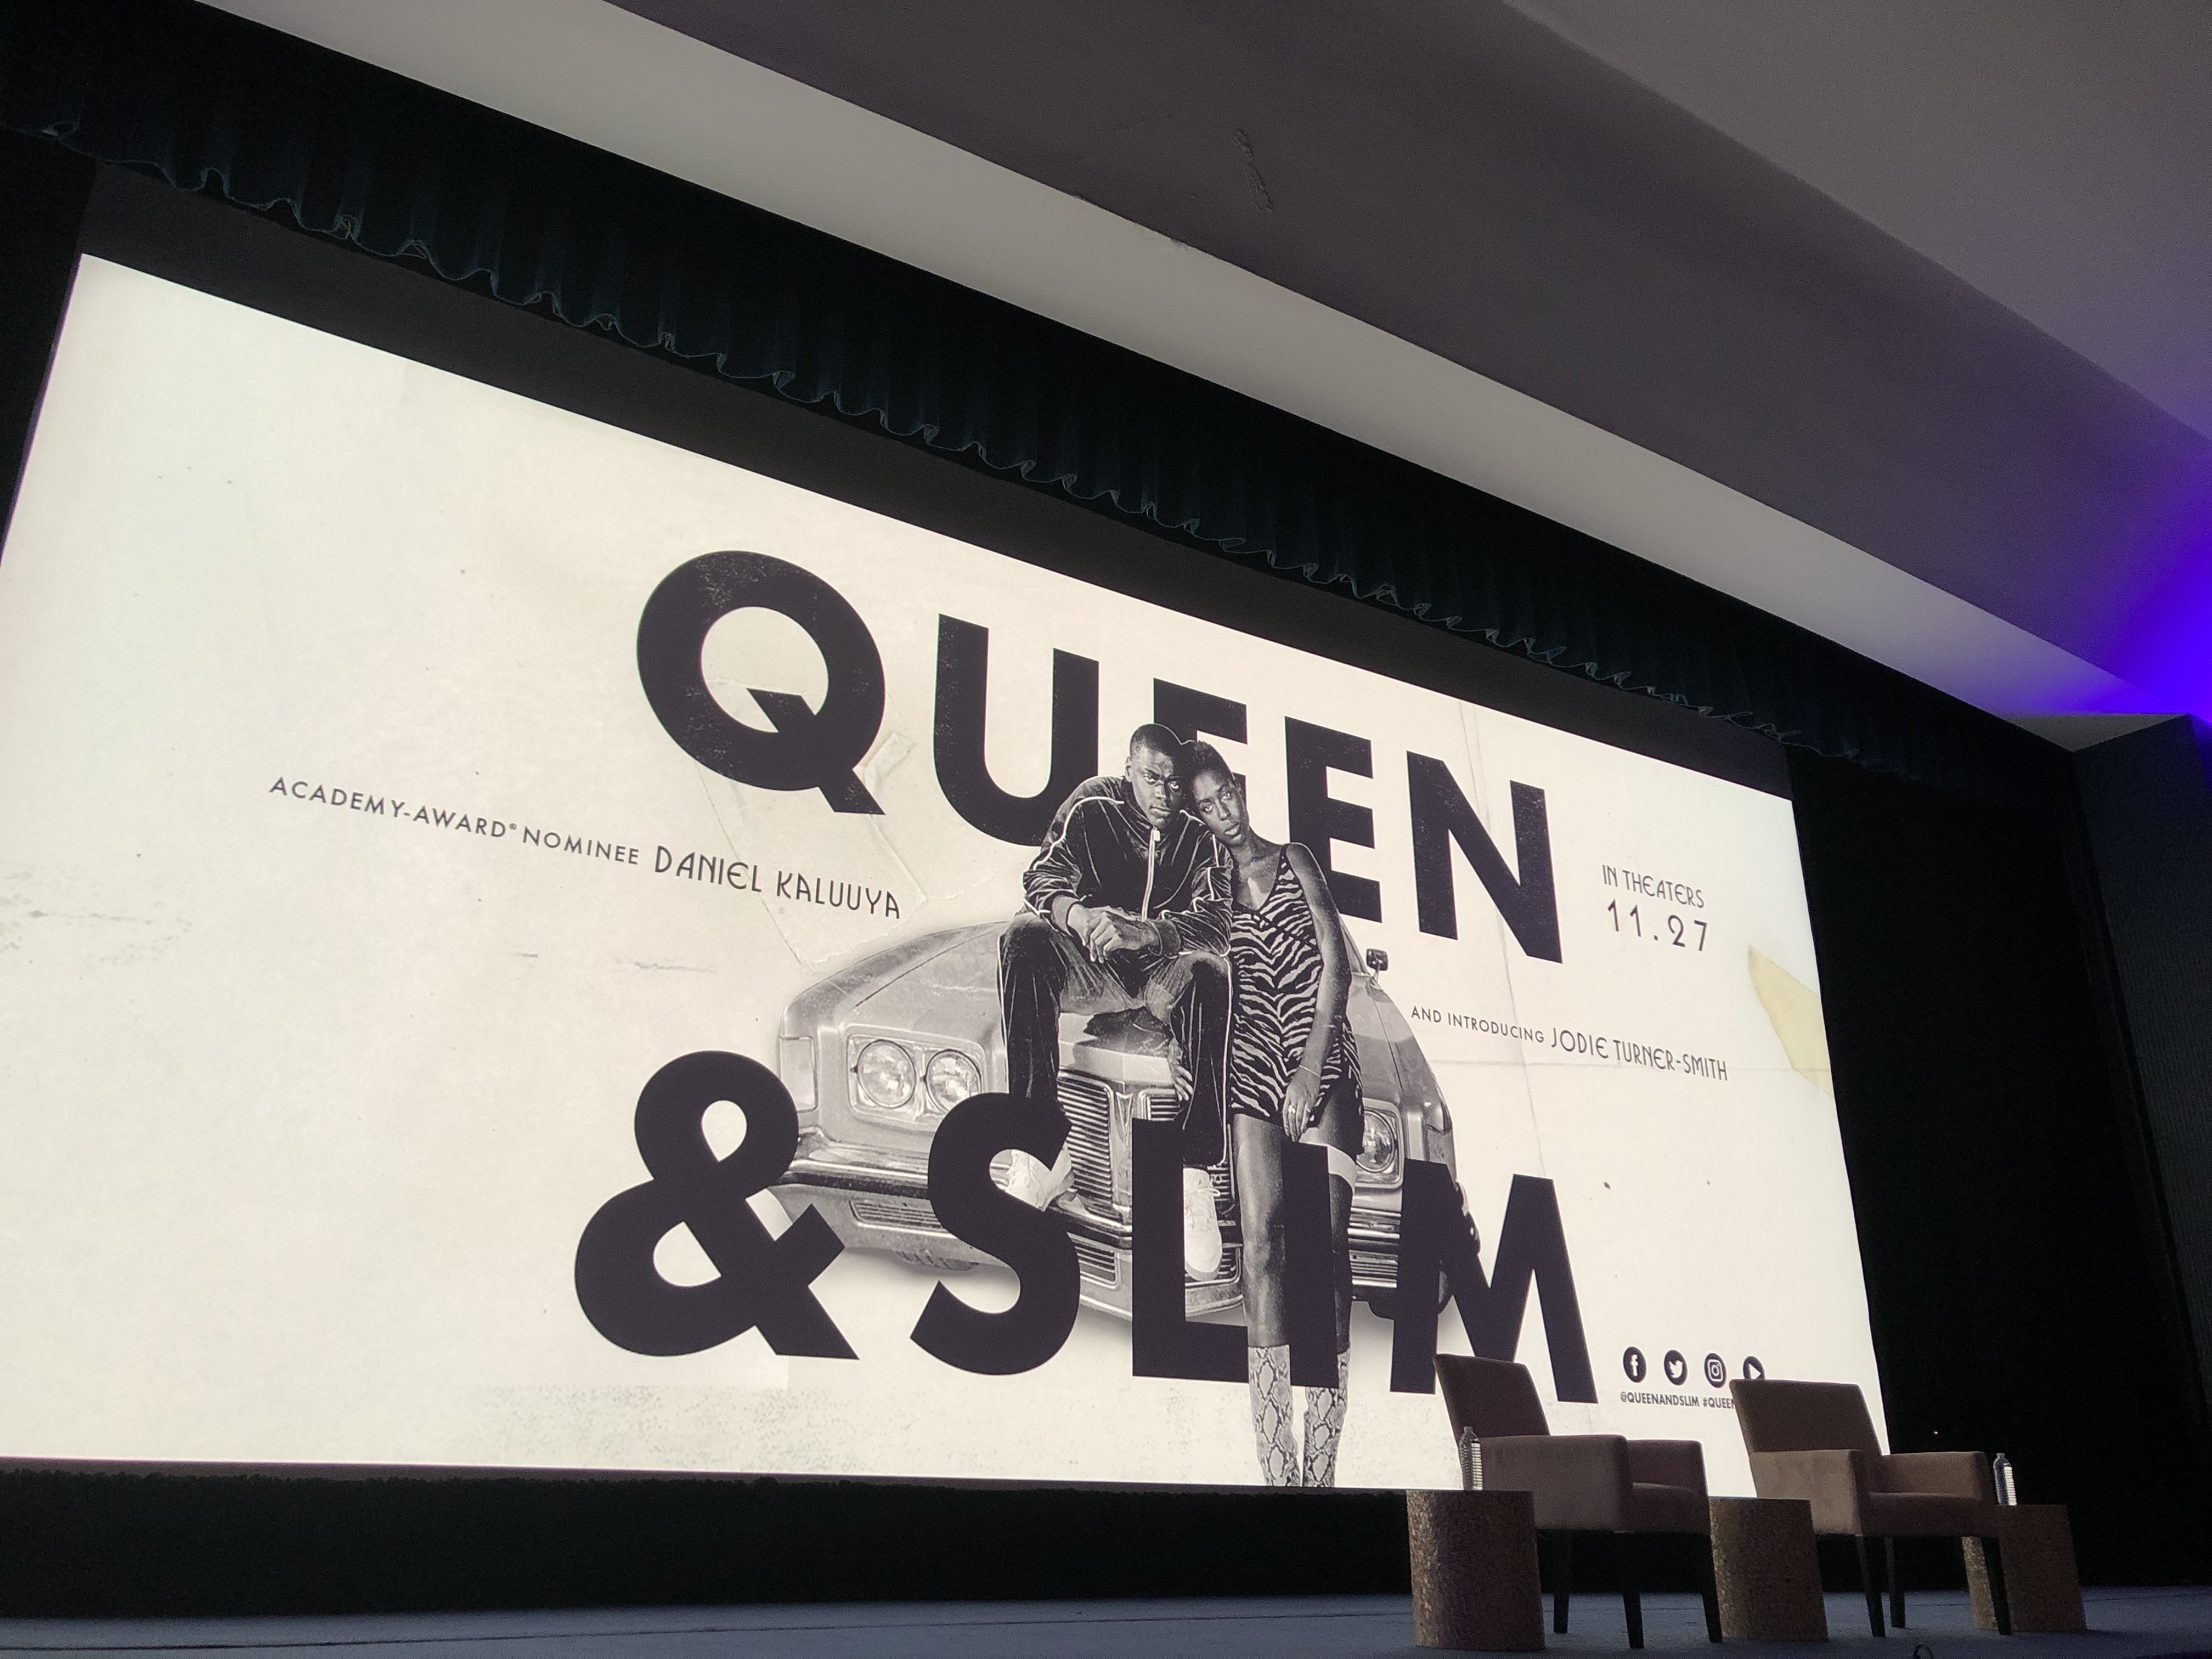 Review: Love & Legacy: Queen & Slim, An Instant Classic?